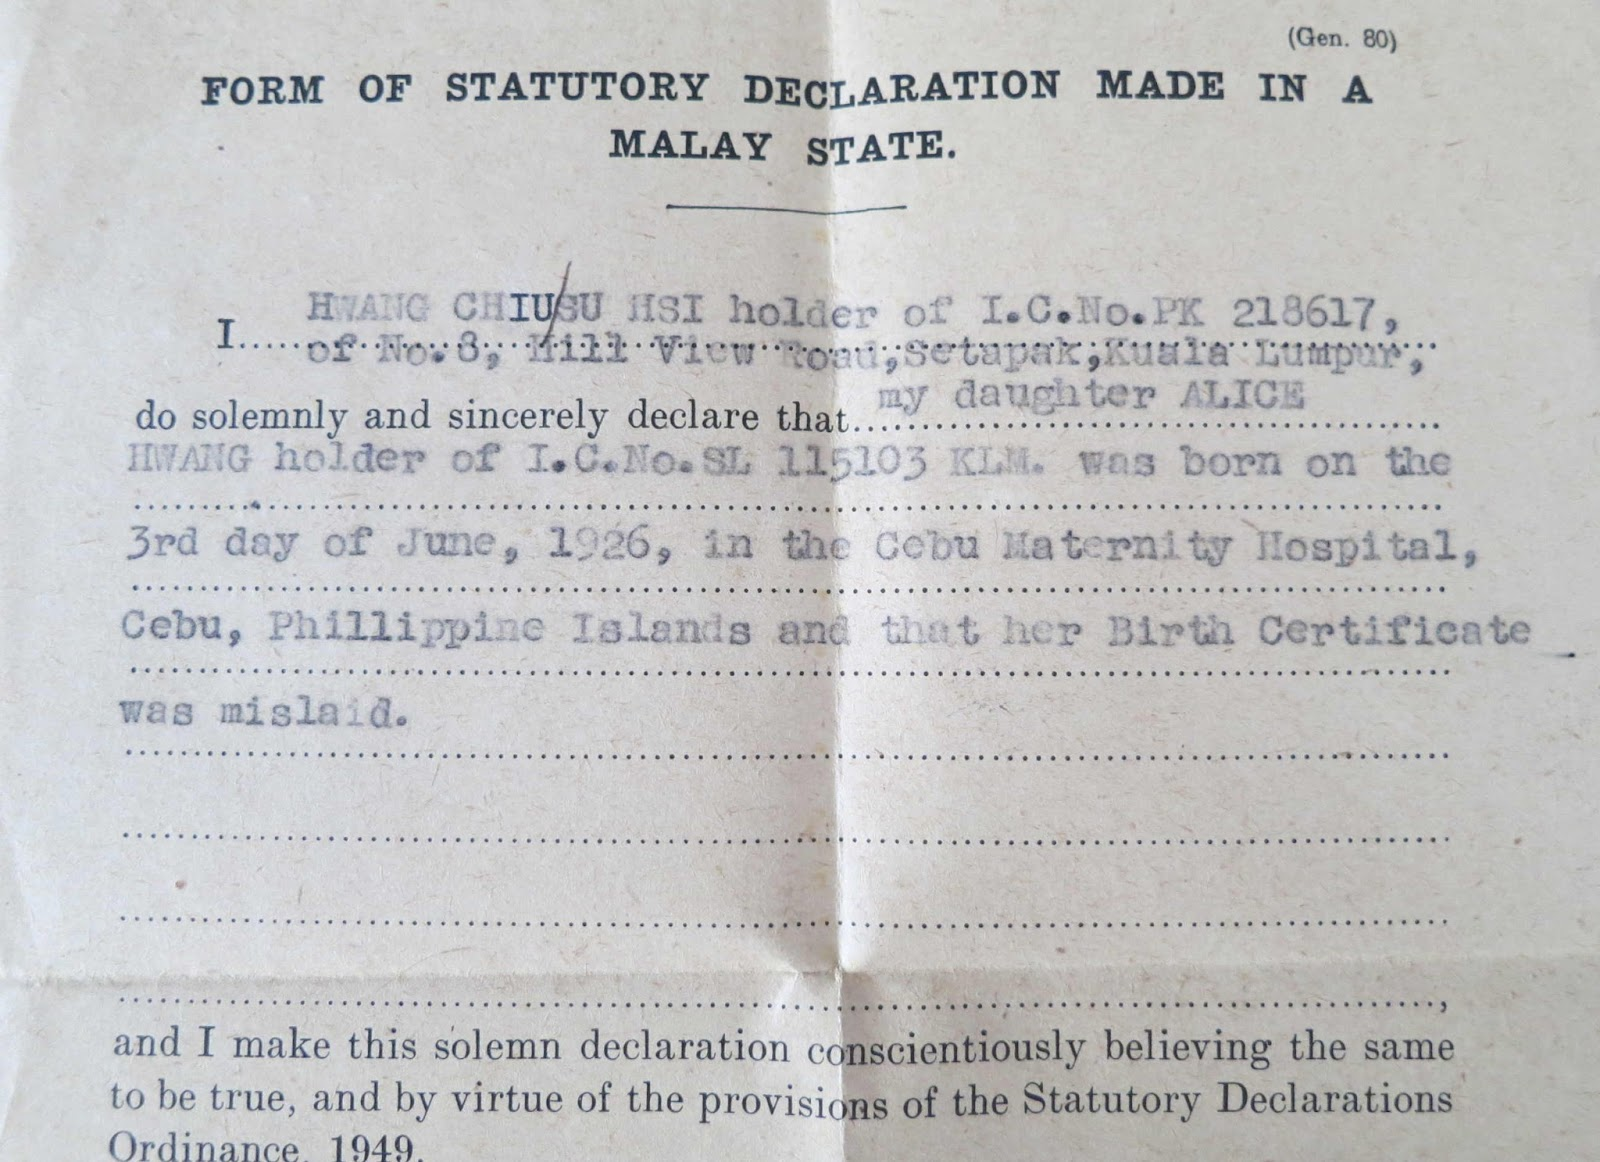 Peggy loh my johor stories january 2013 a section of the statutory declaration that her mother made concerning the loss of her birth certificate aiddatafo Gallery